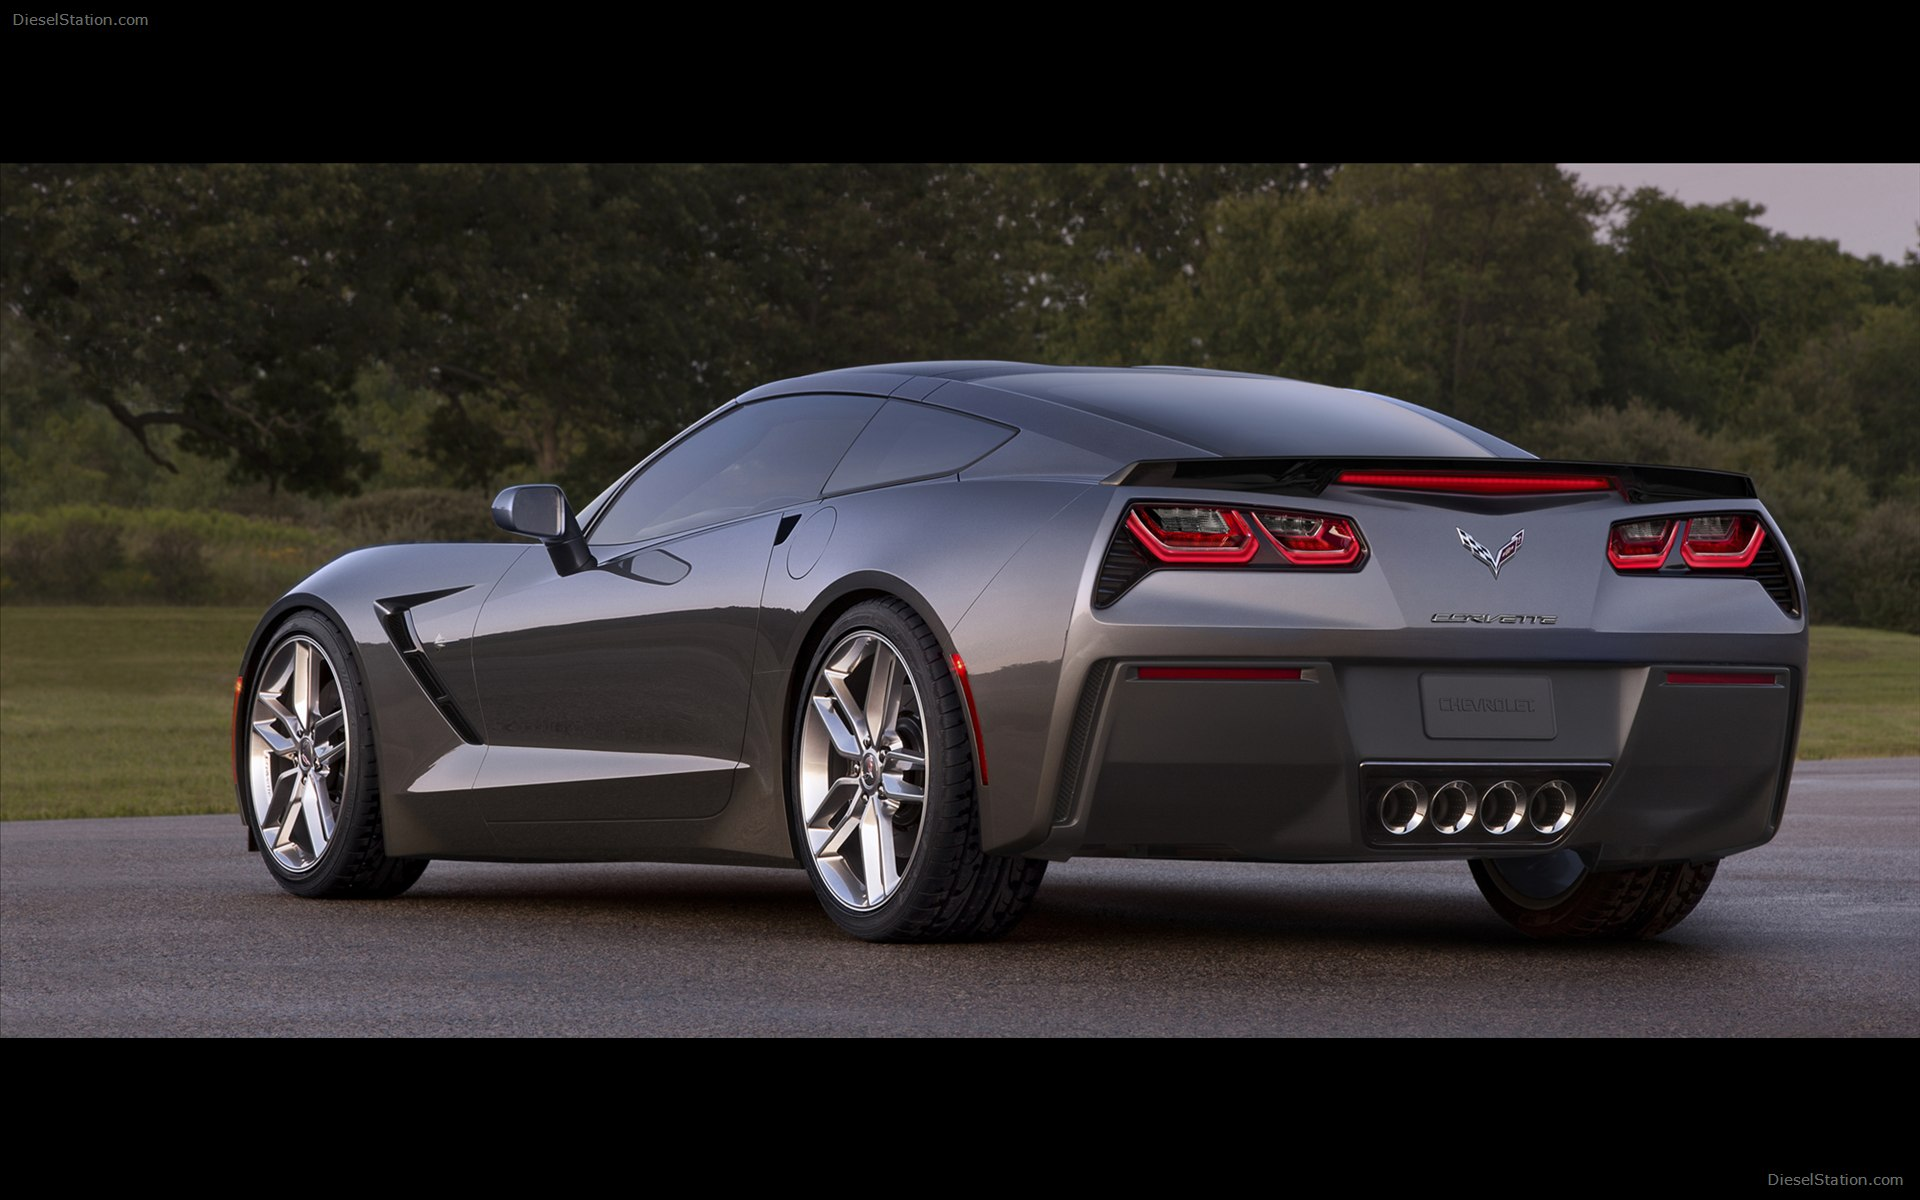 Corvette c7 Stingray Wallpaper Chevrolet Corvette c7 Stingray 1920x1200